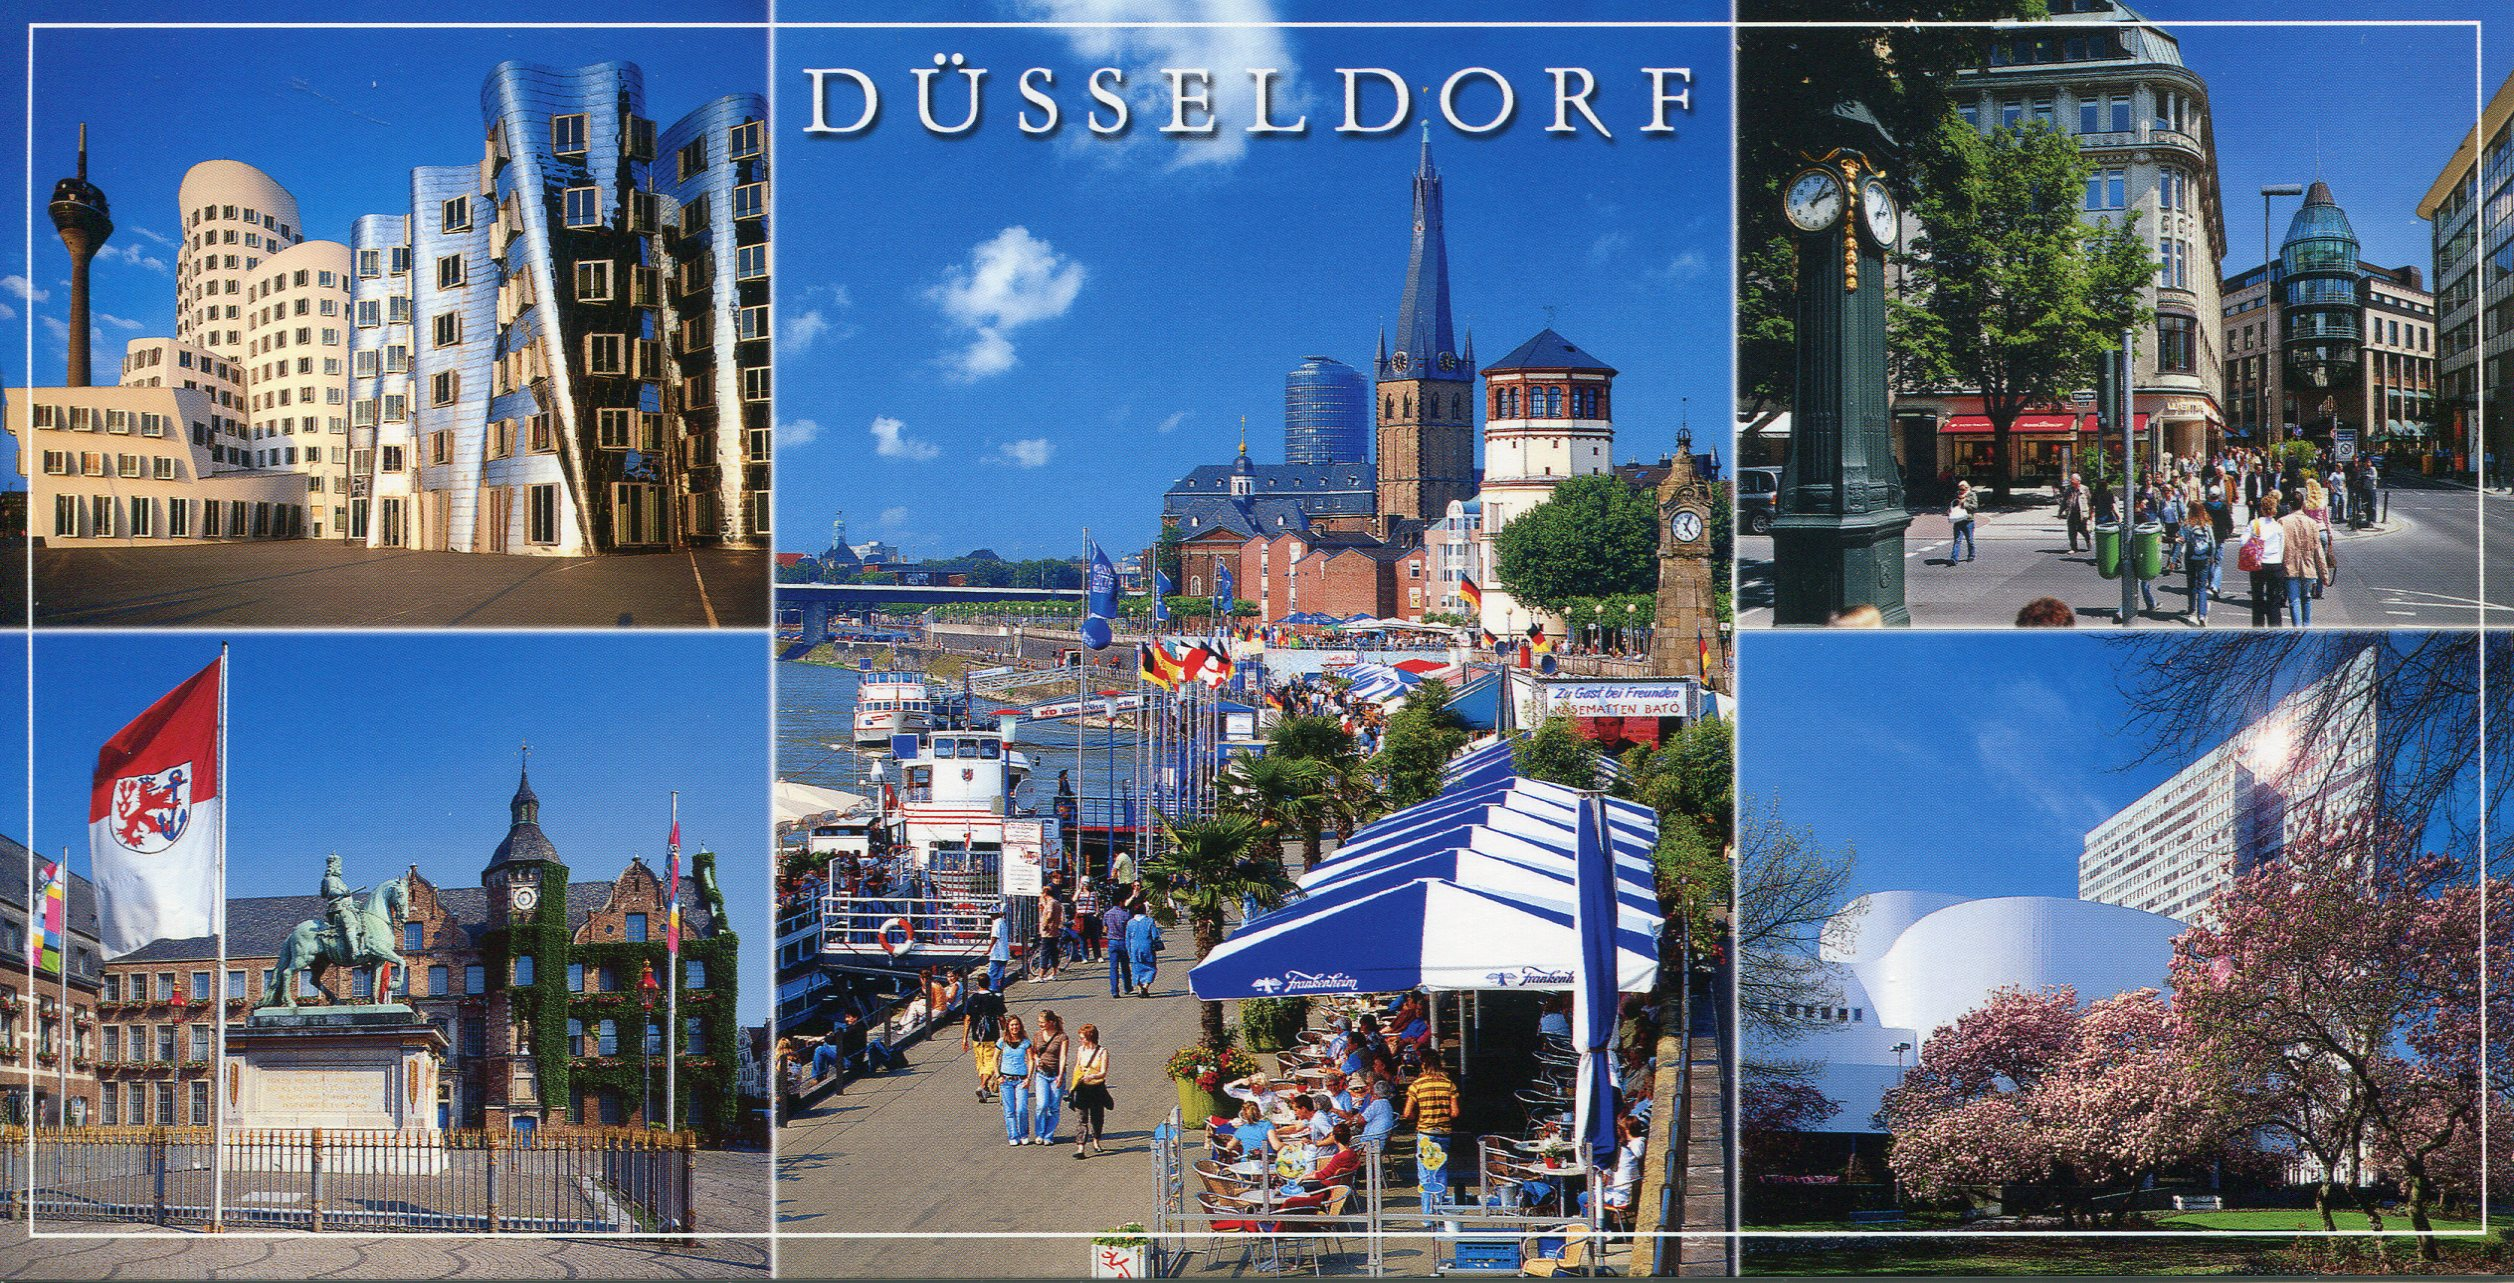 Dusseldorf Germany  city photos gallery : Germany Dusseldorf